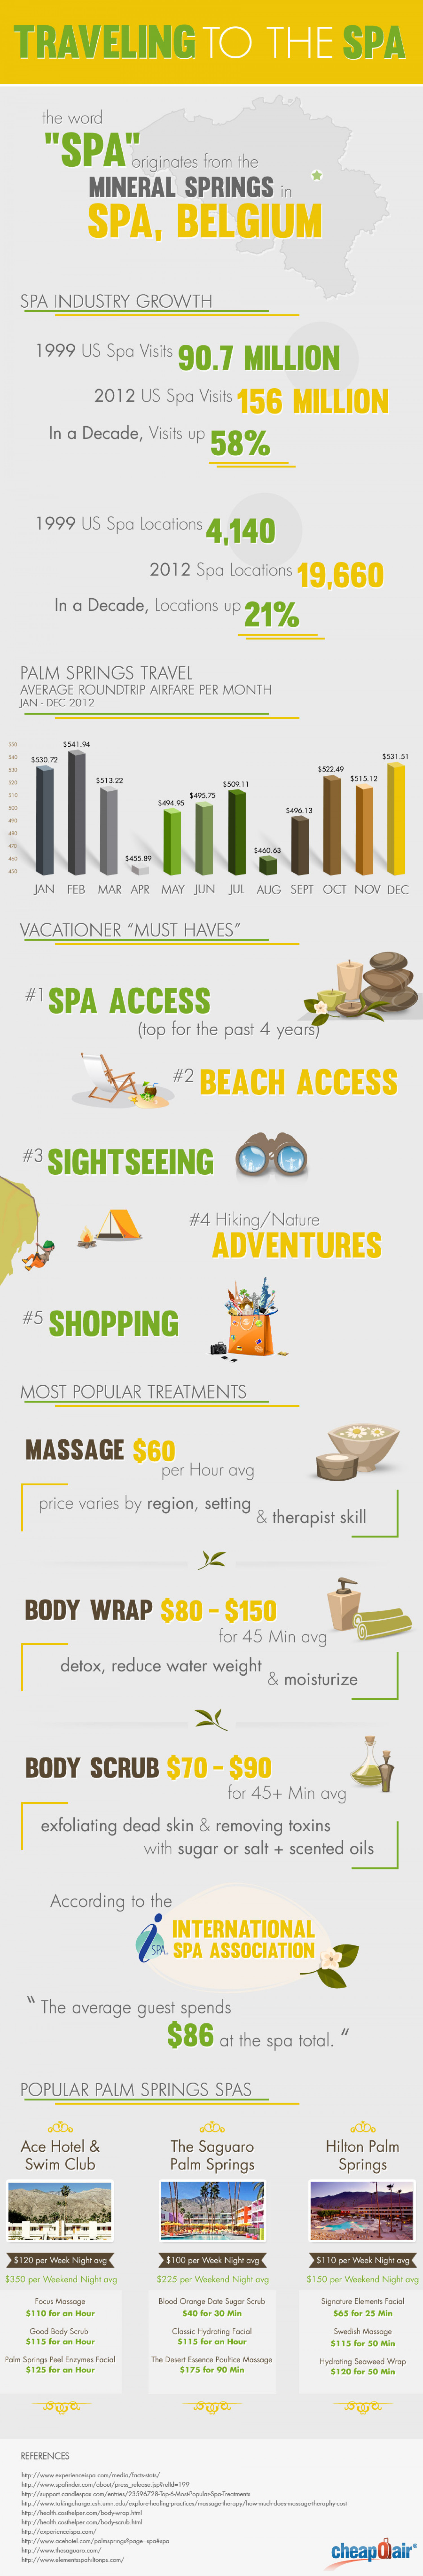 Traveling to the spa Infographic